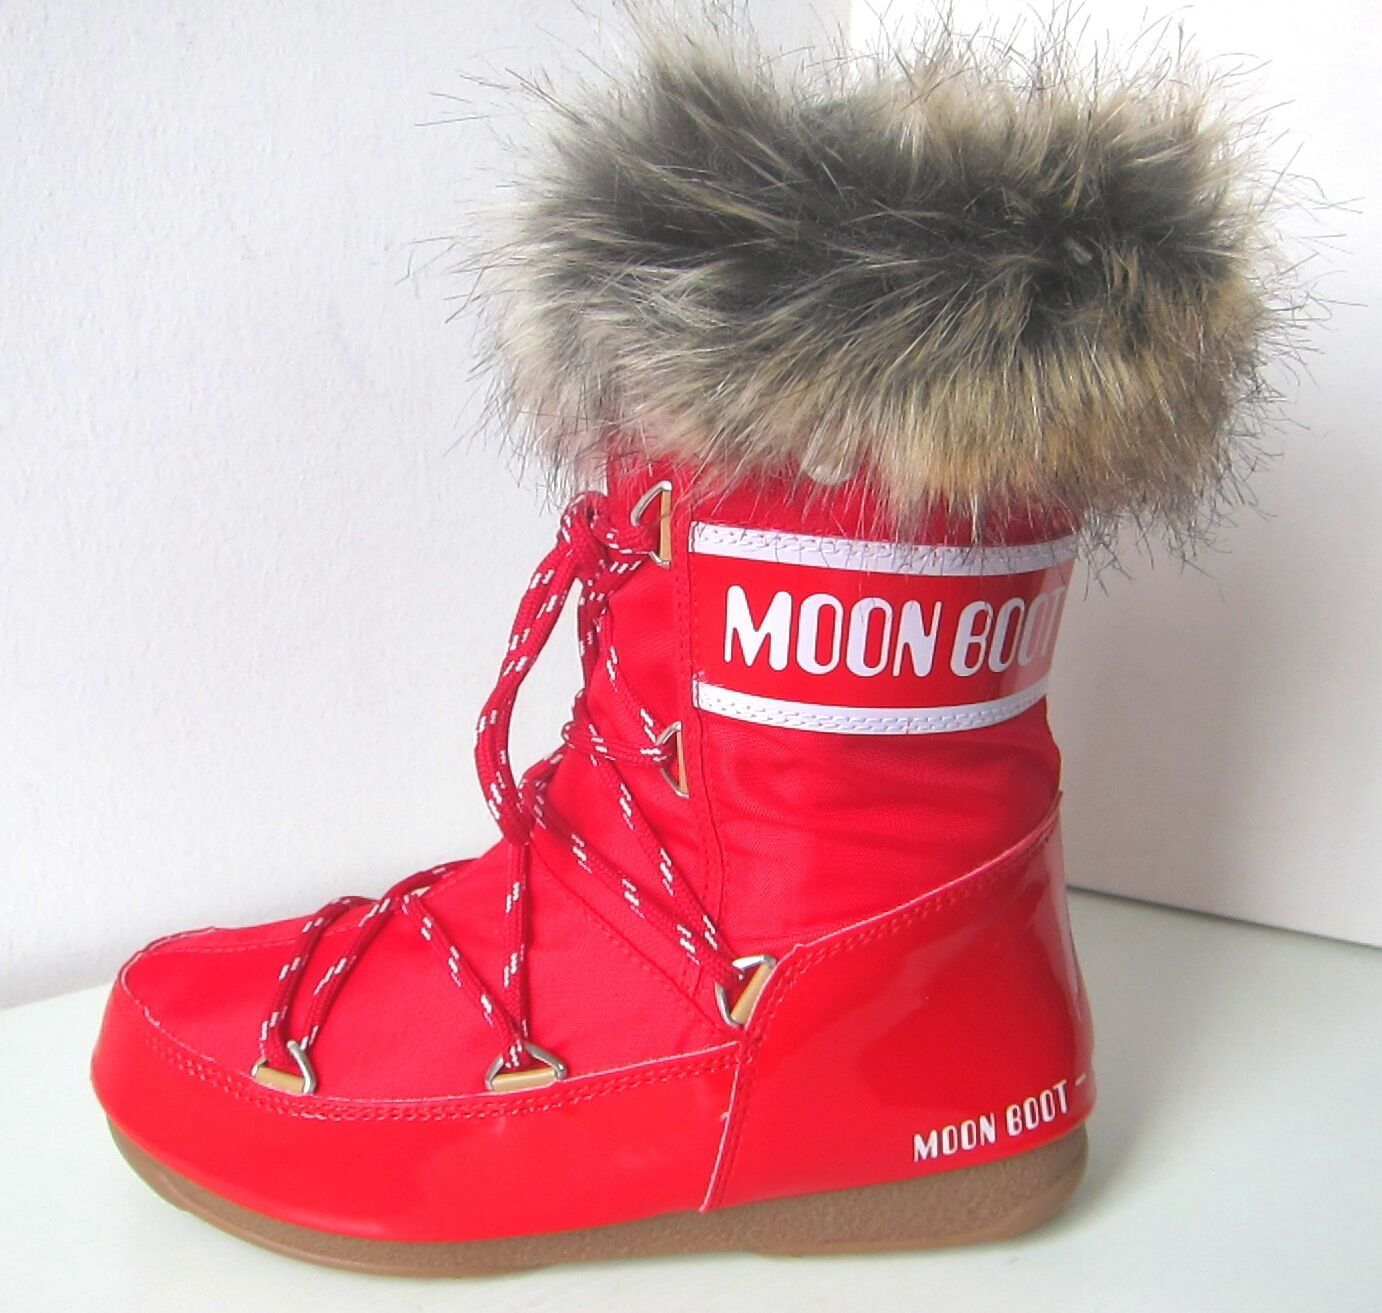 Tecnica MOON BOOT Monaco low rot Gr. 38 Moon Boots red Kunstfell Fell fake fur